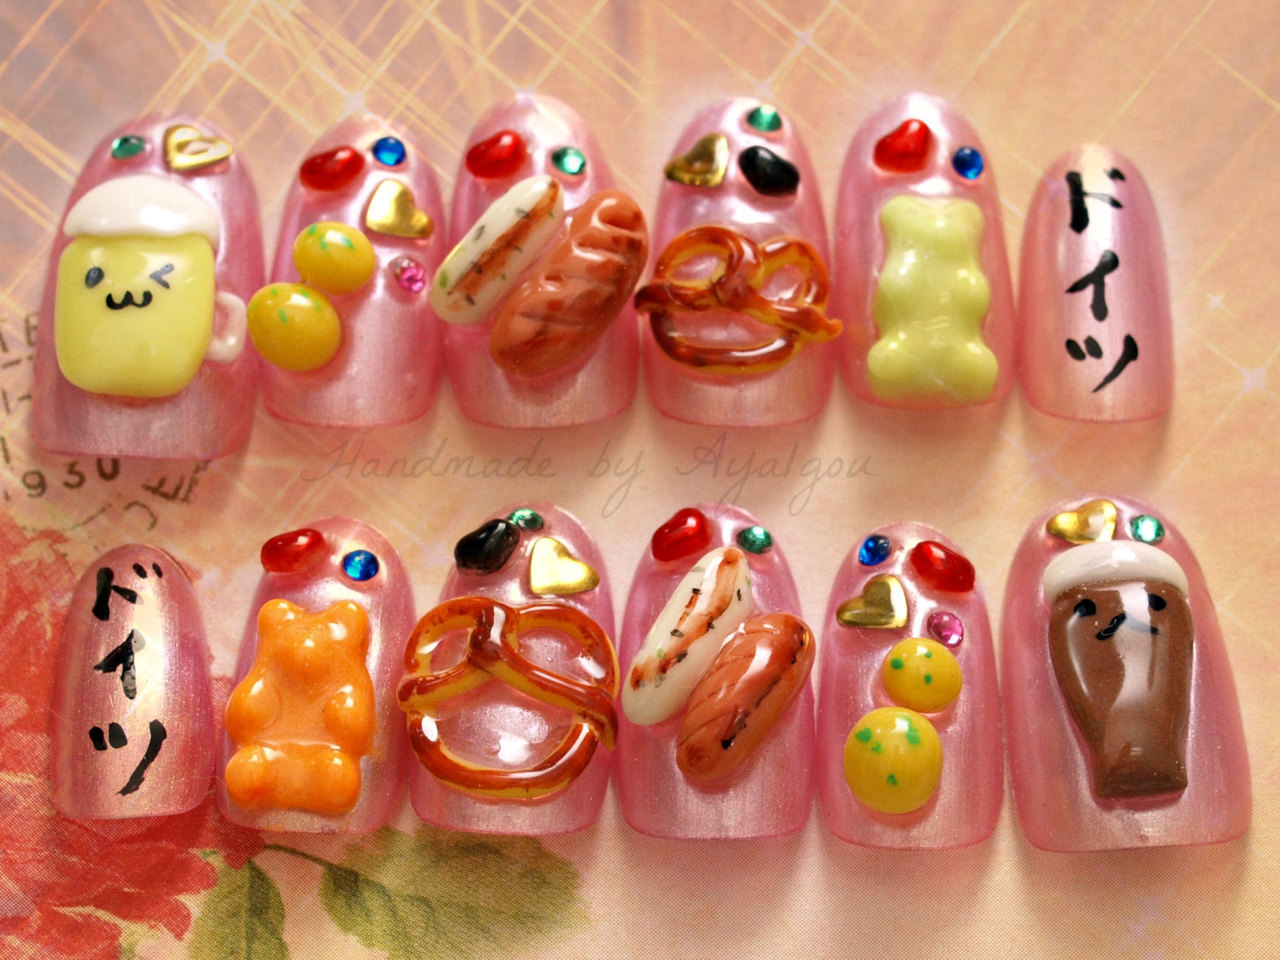 34 images about kawaii nails on We Heart It | See more about kawaii ...